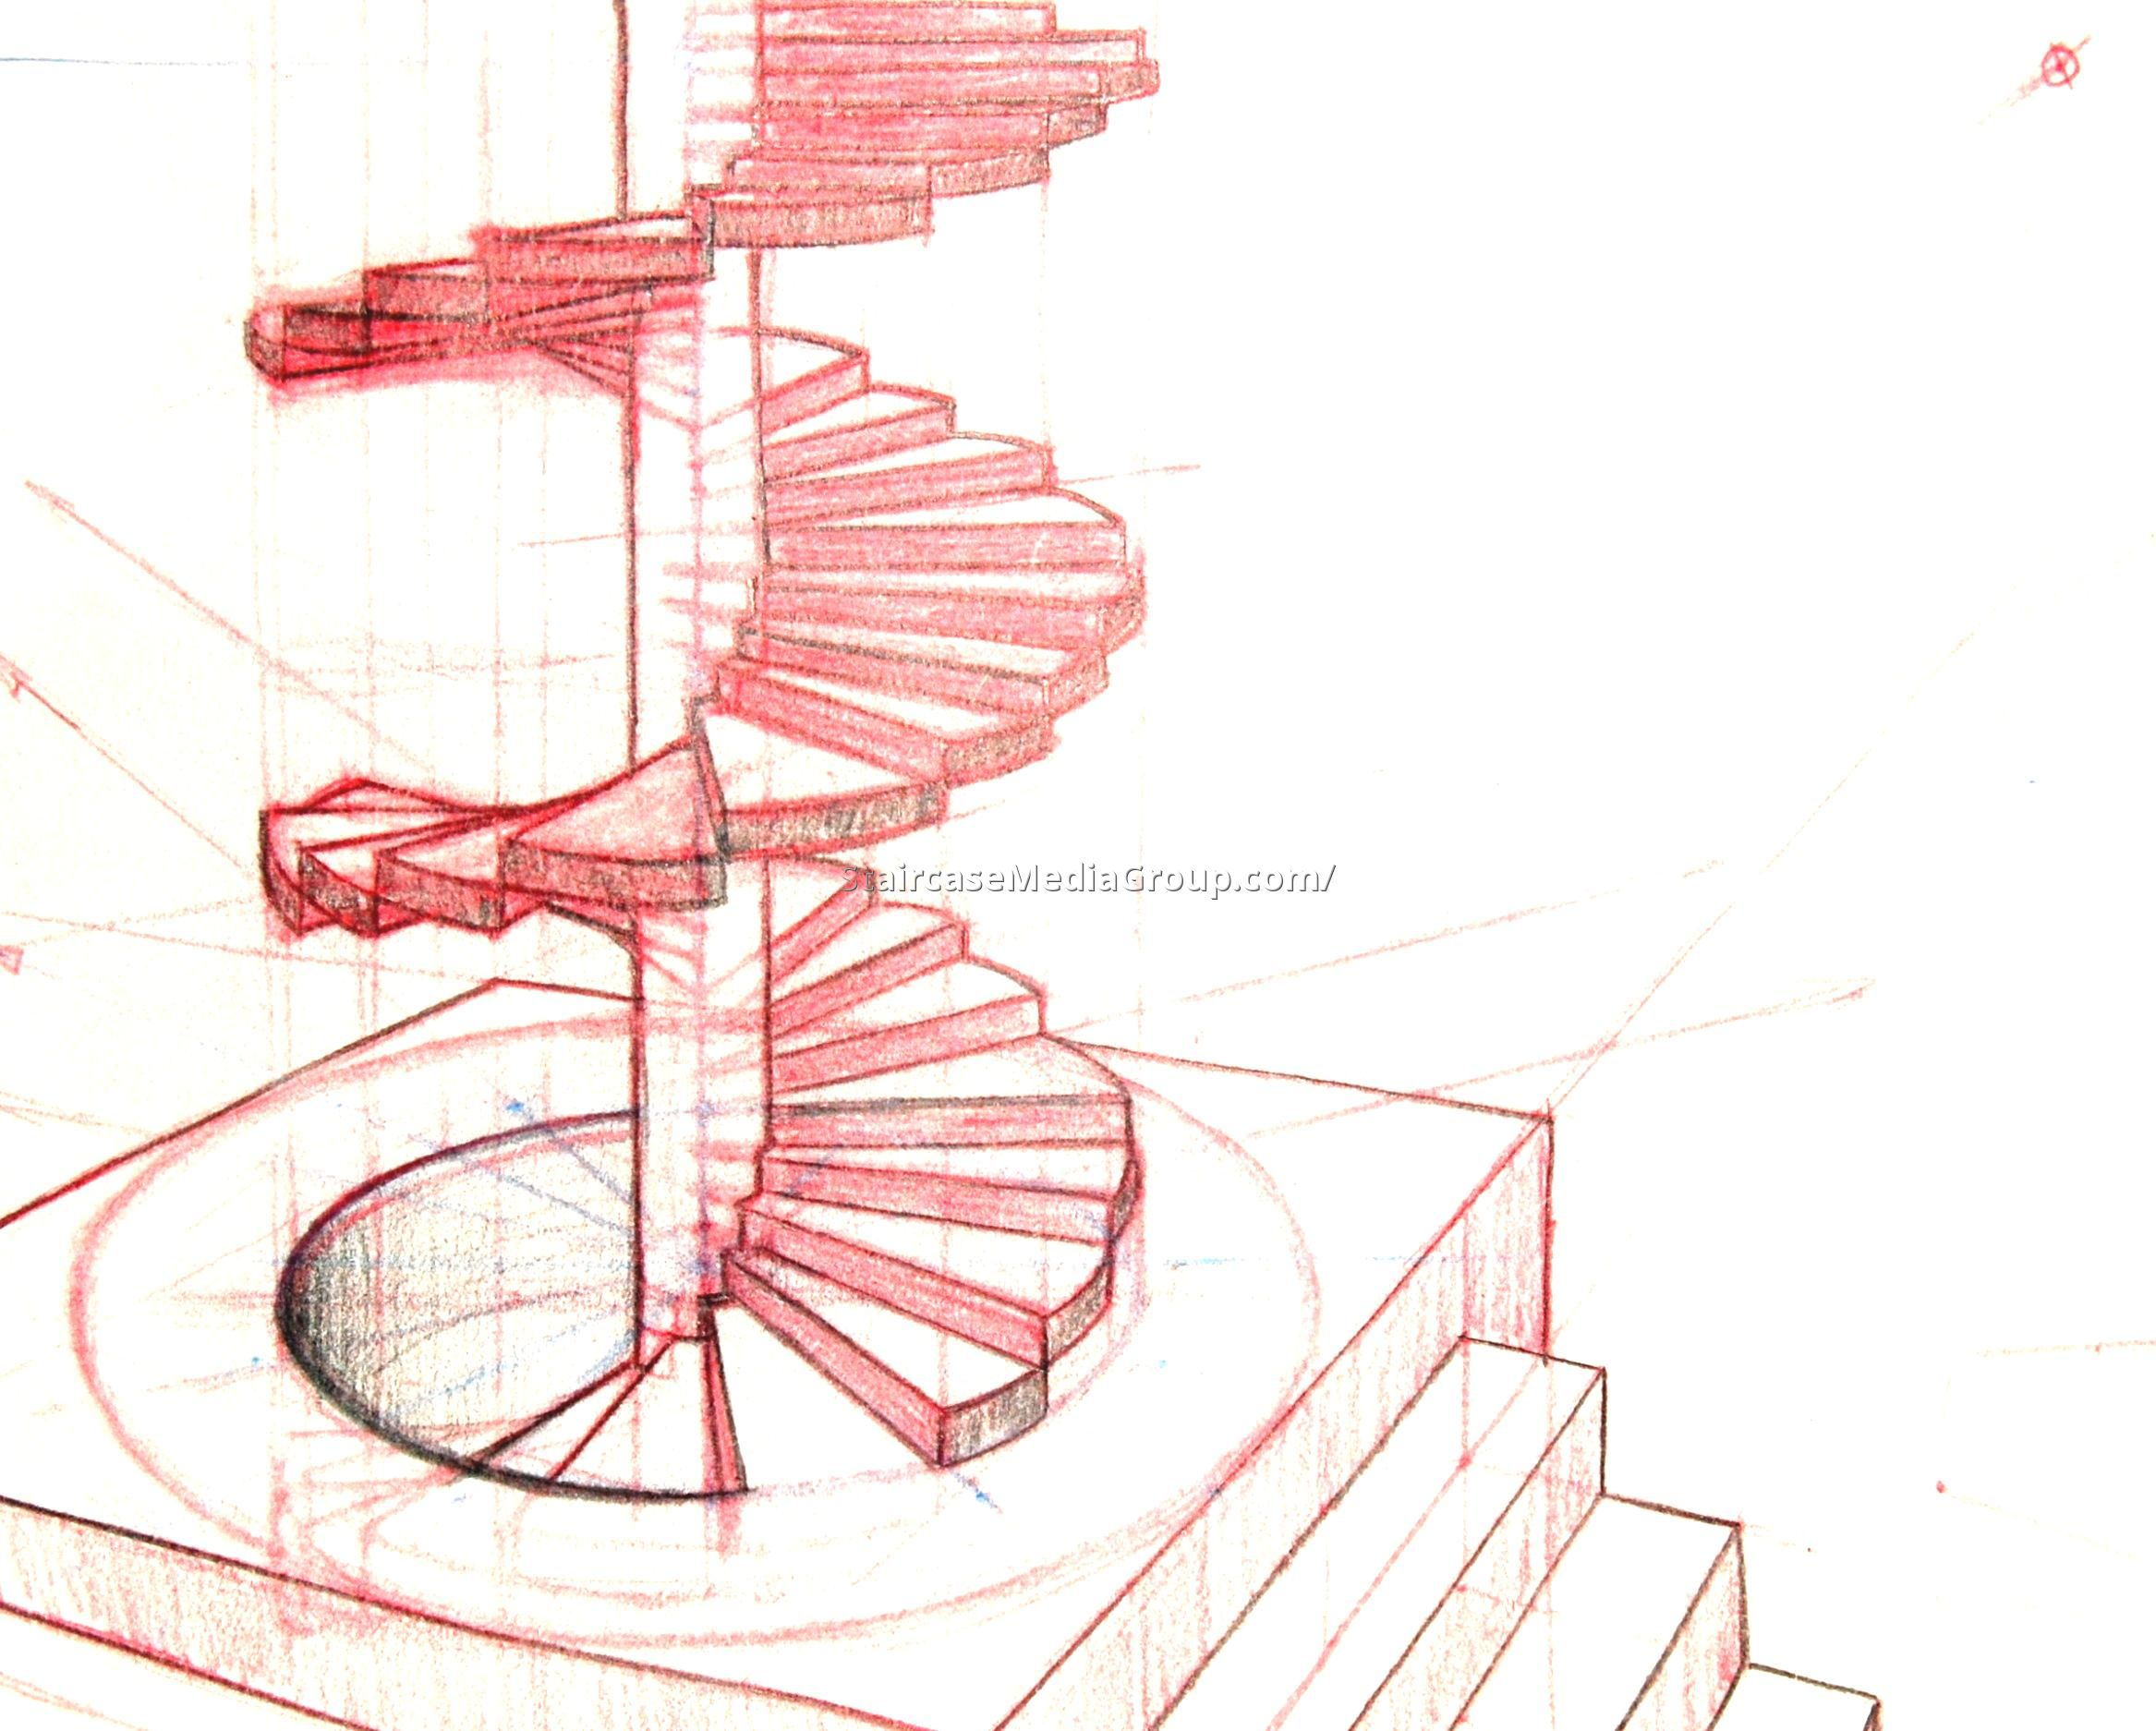 Drawn stairs technical drawing Stair enterprise the Spiral the